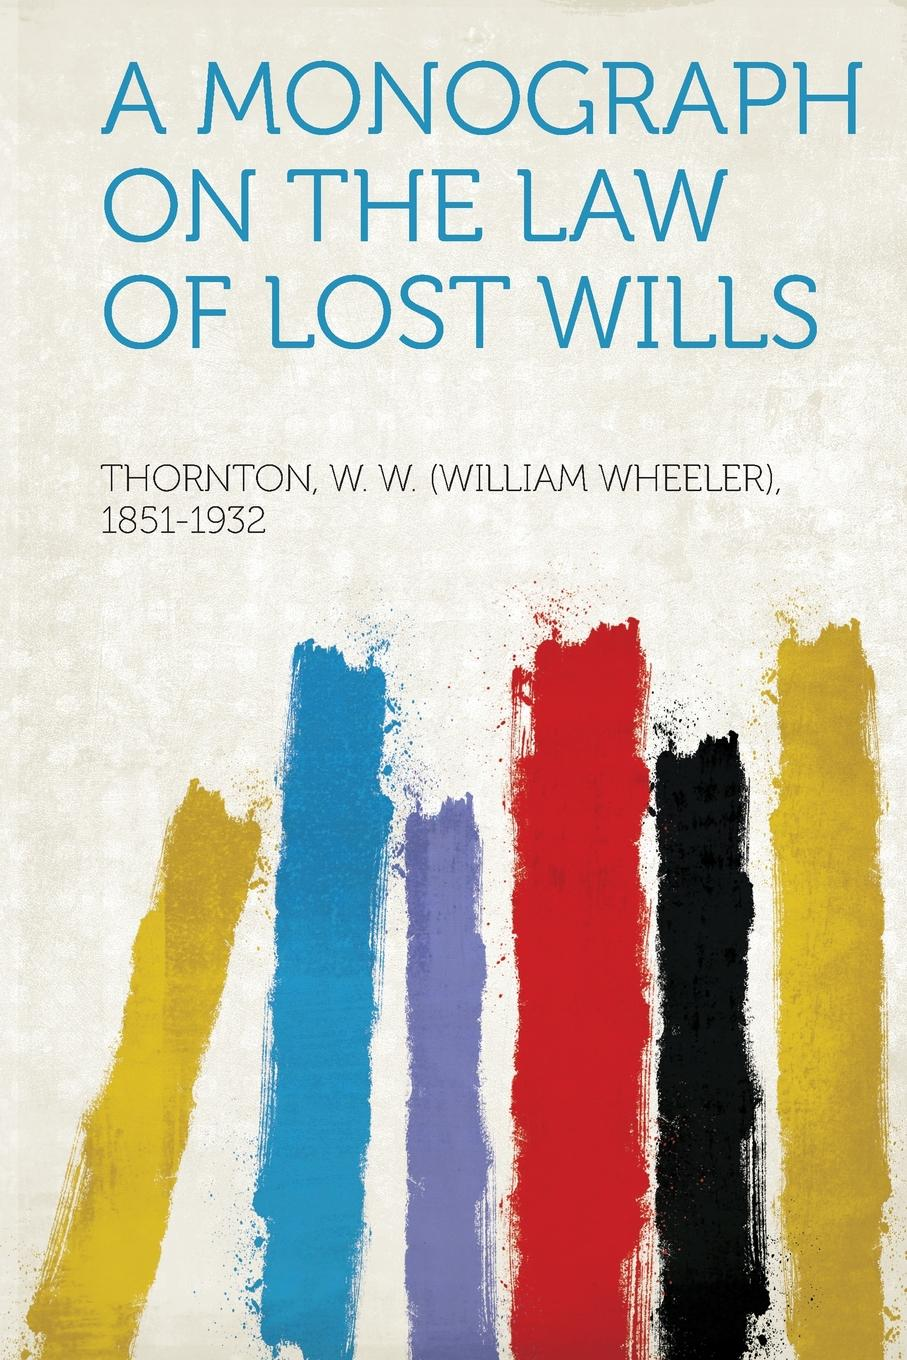 A Monograph on the Law of Lost Wills